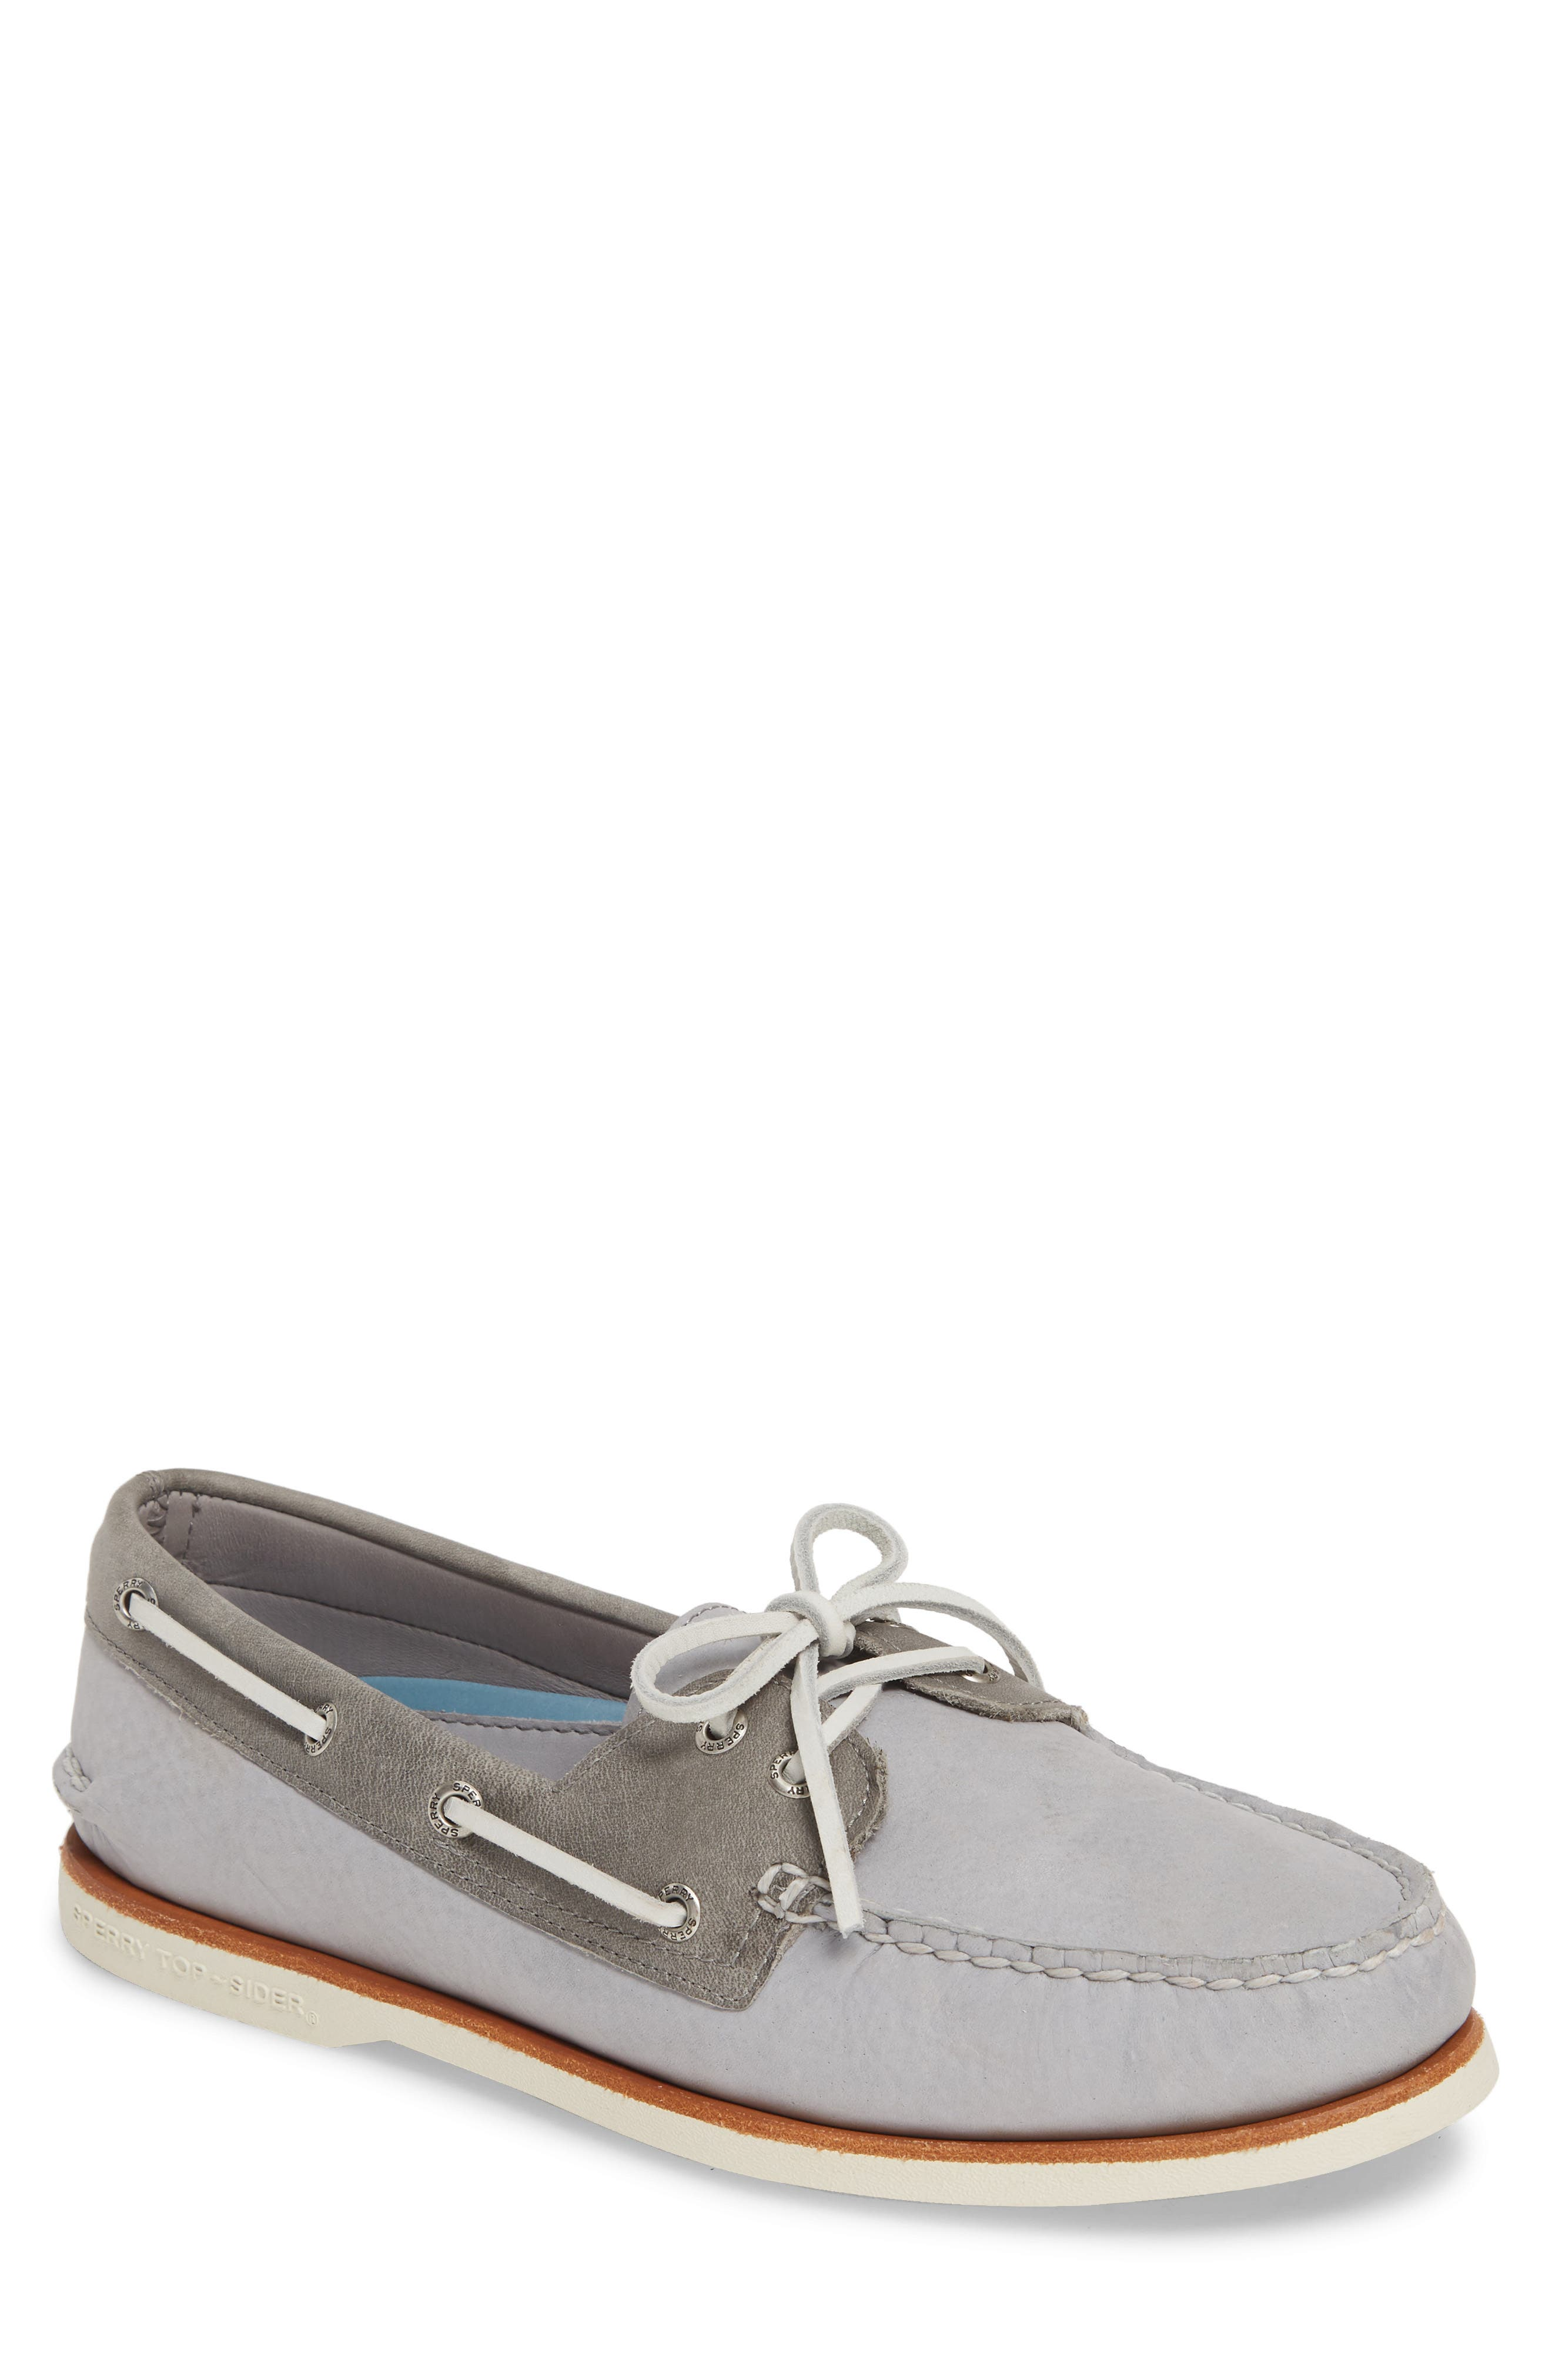 SPERRY 'Gold Cup - Authentic Original' Boat Shoe, Main, color, GREY/GREY LEATHER